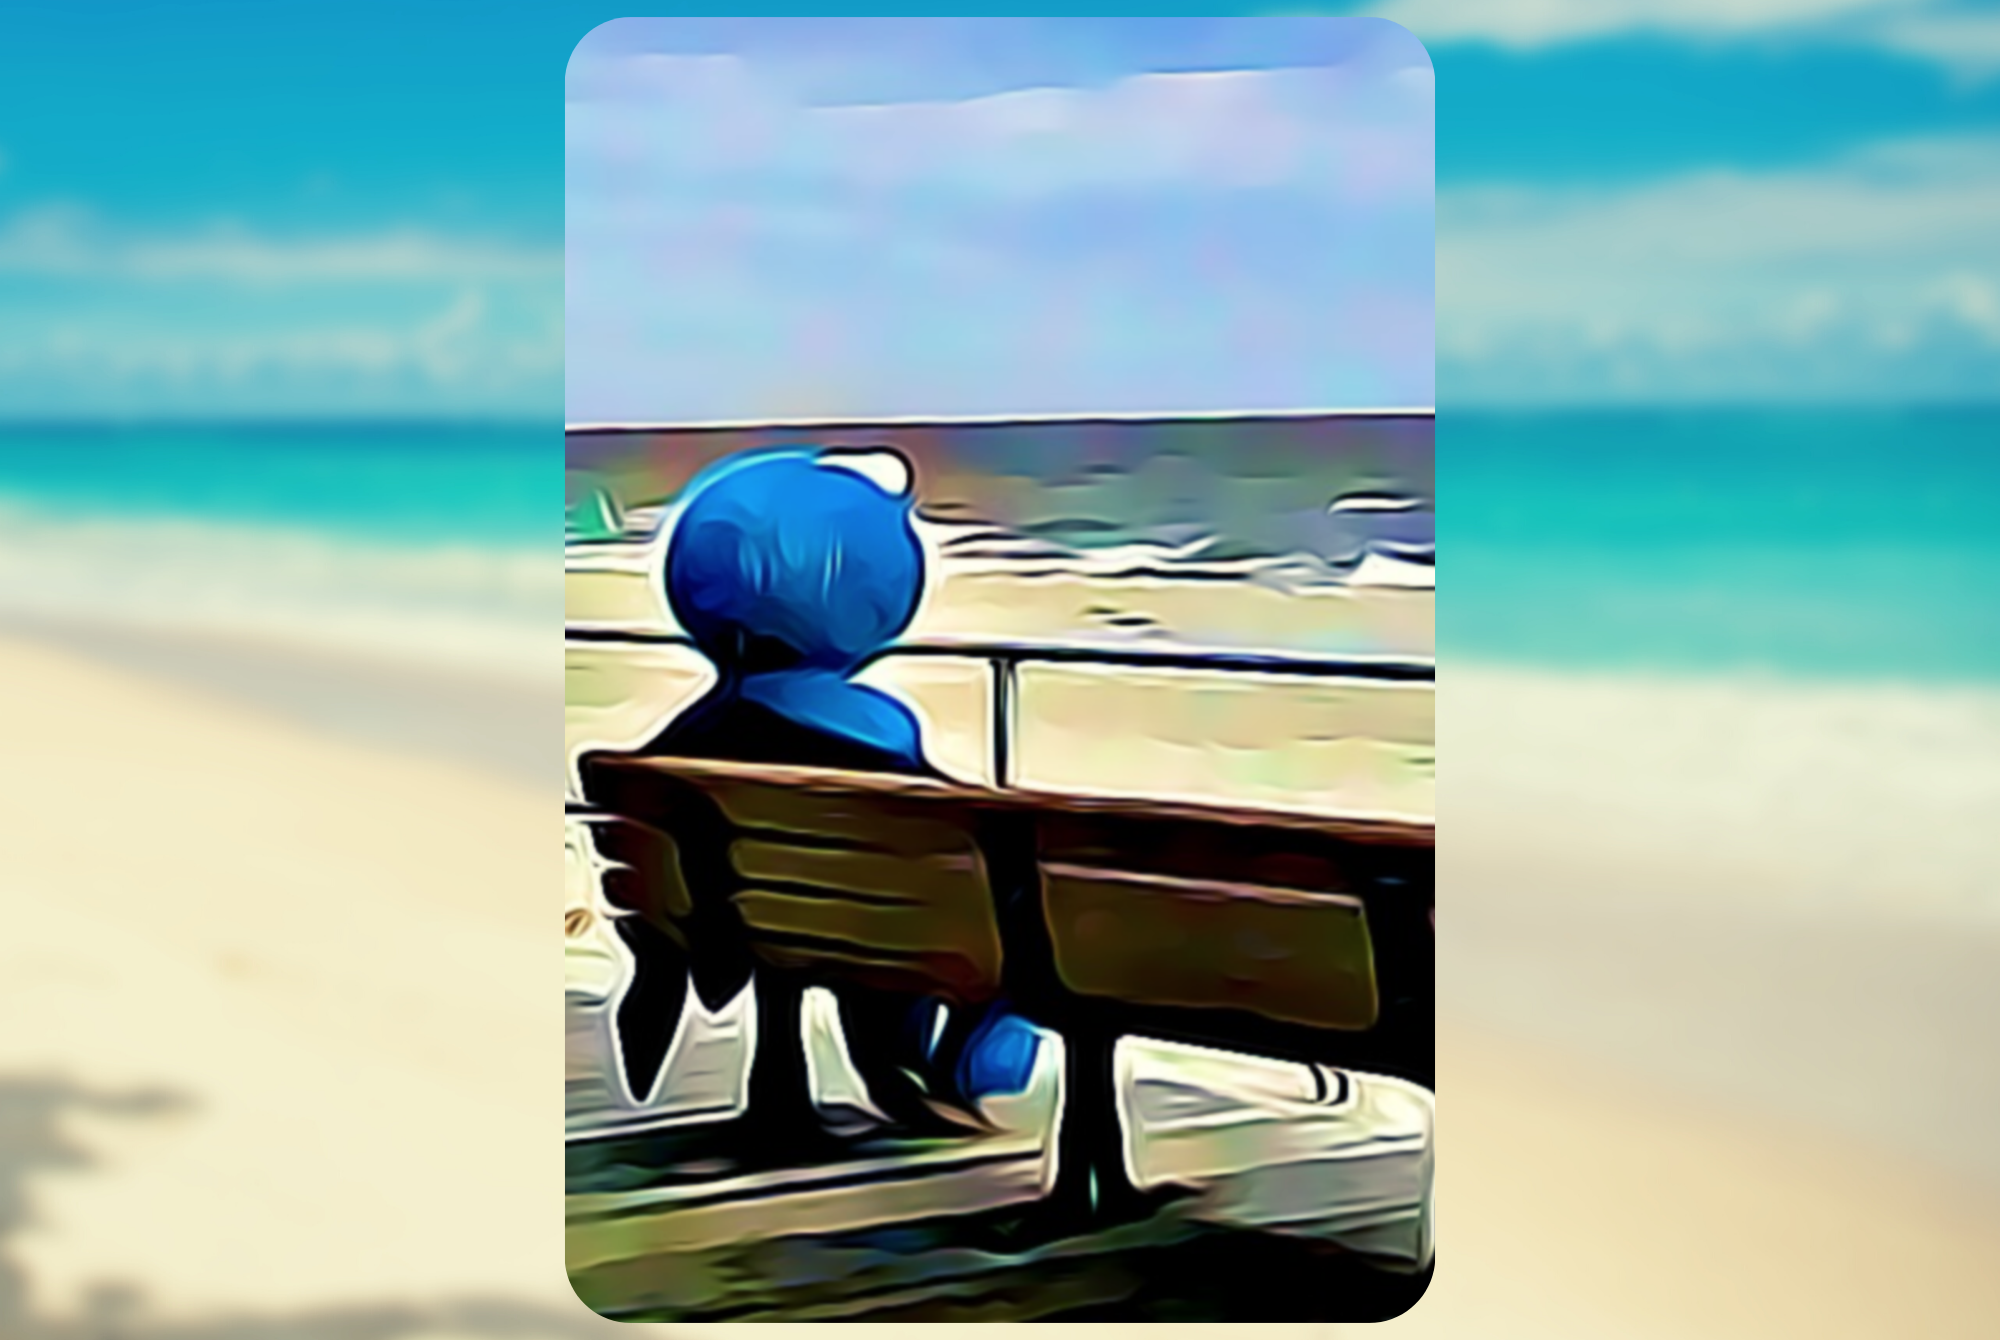 A cookie monster sitting on a beach bench looking off into the distance.